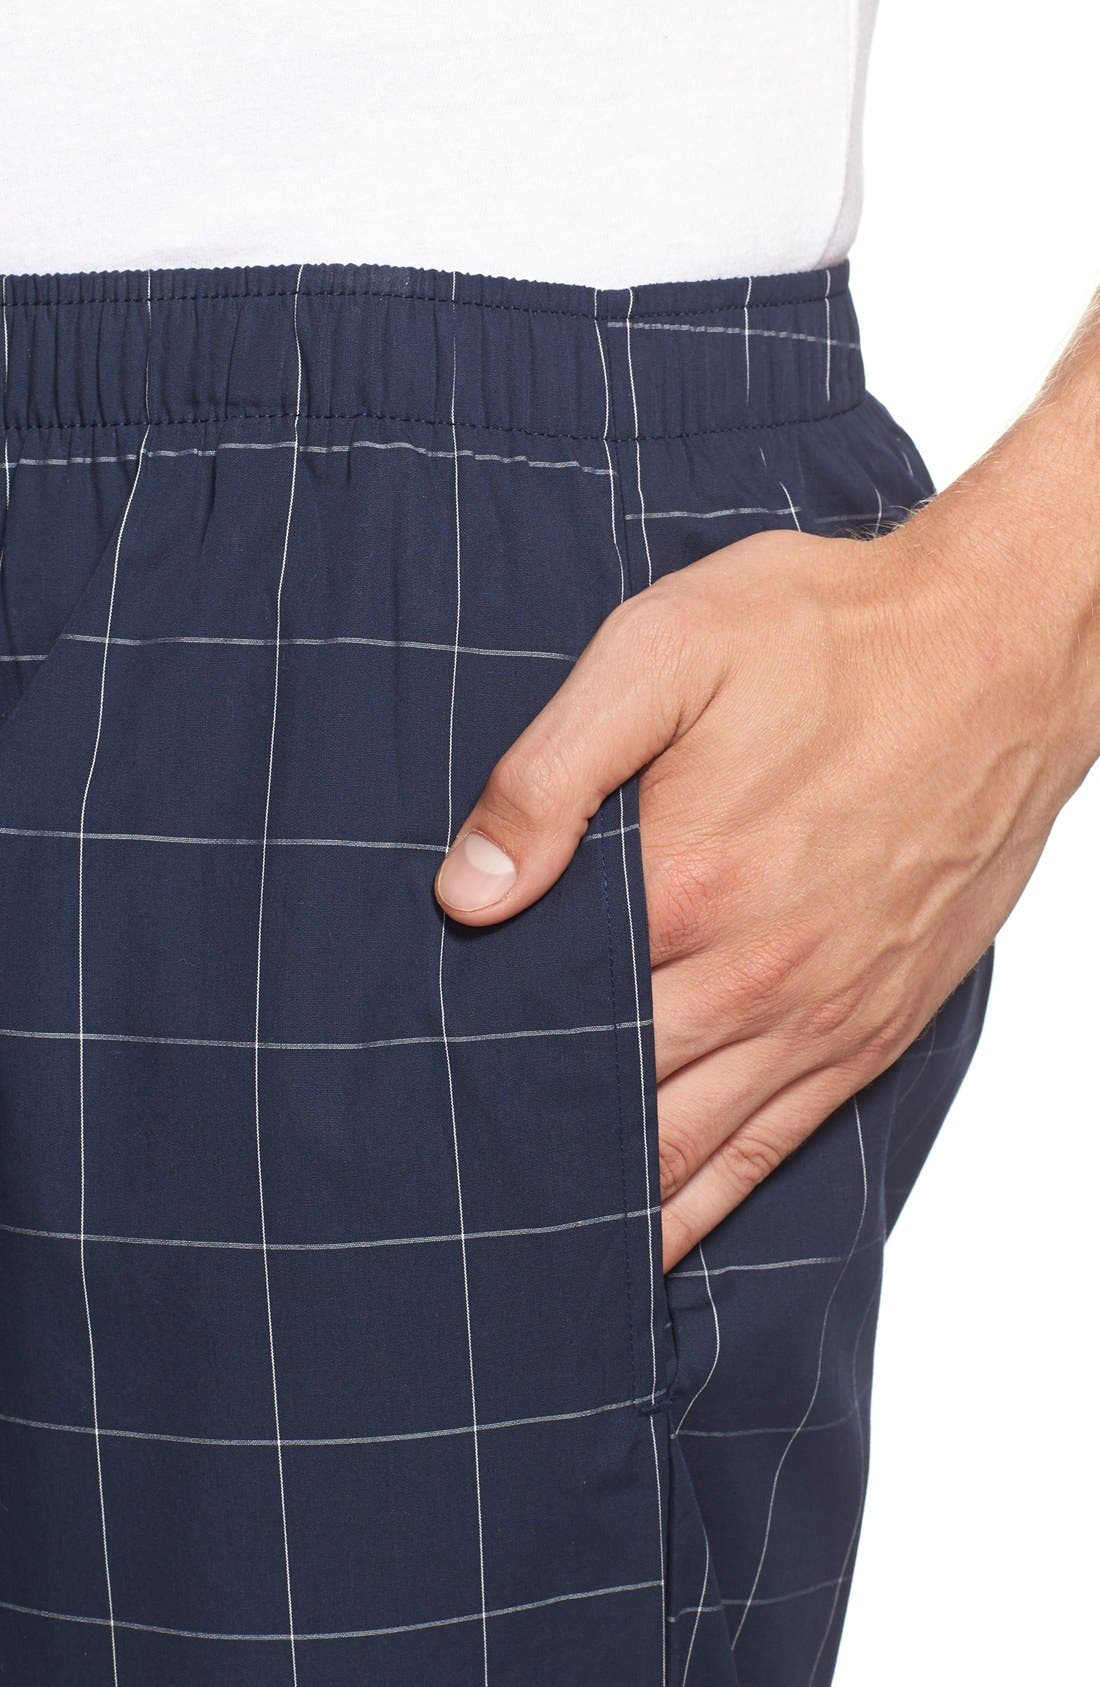 Cotton Pajama Pants,                             Alternate thumbnail 4, color,                             CRUISE NAVY